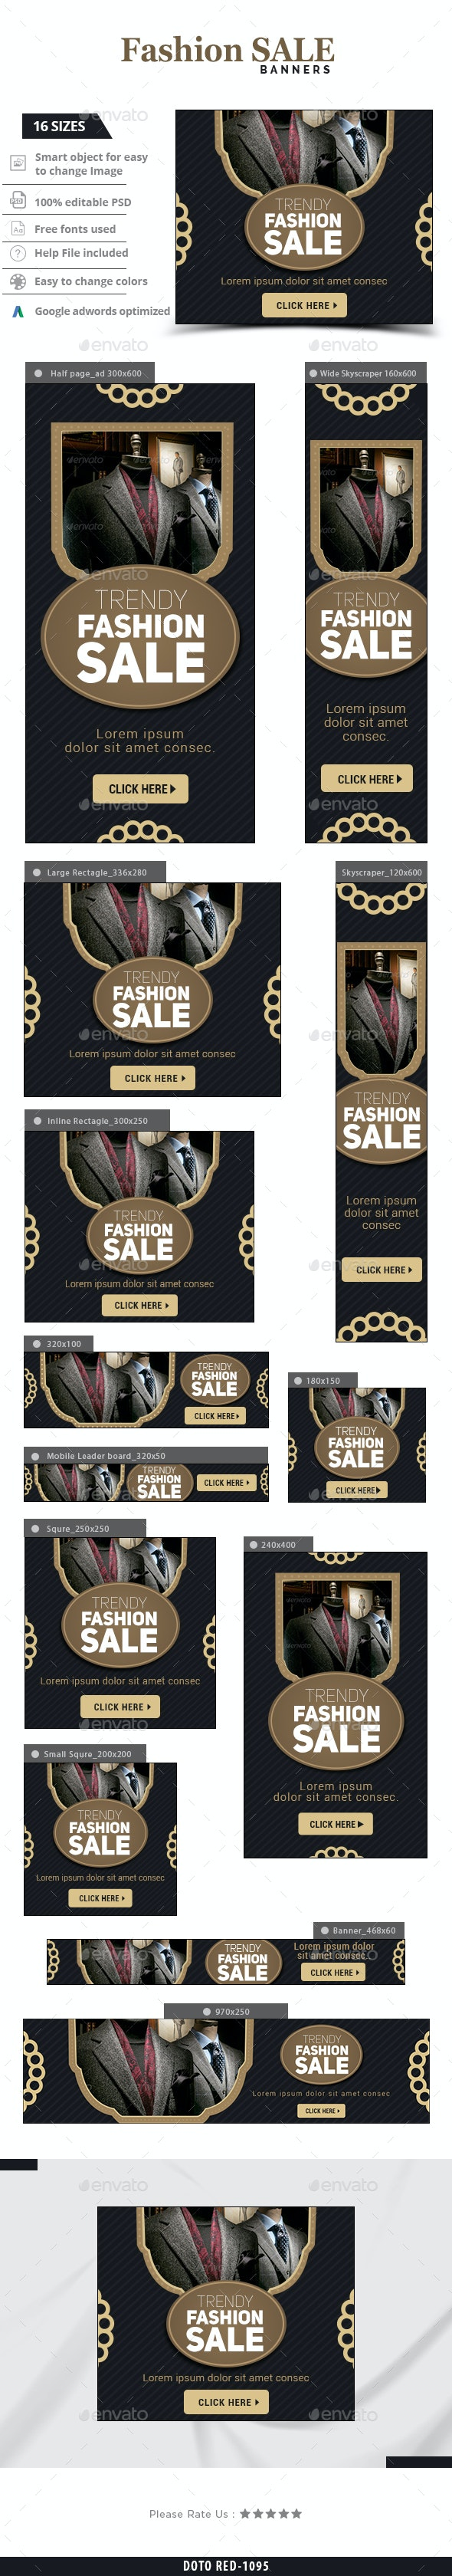 Trendy Fashion Banners - Banners & Ads Web Elements